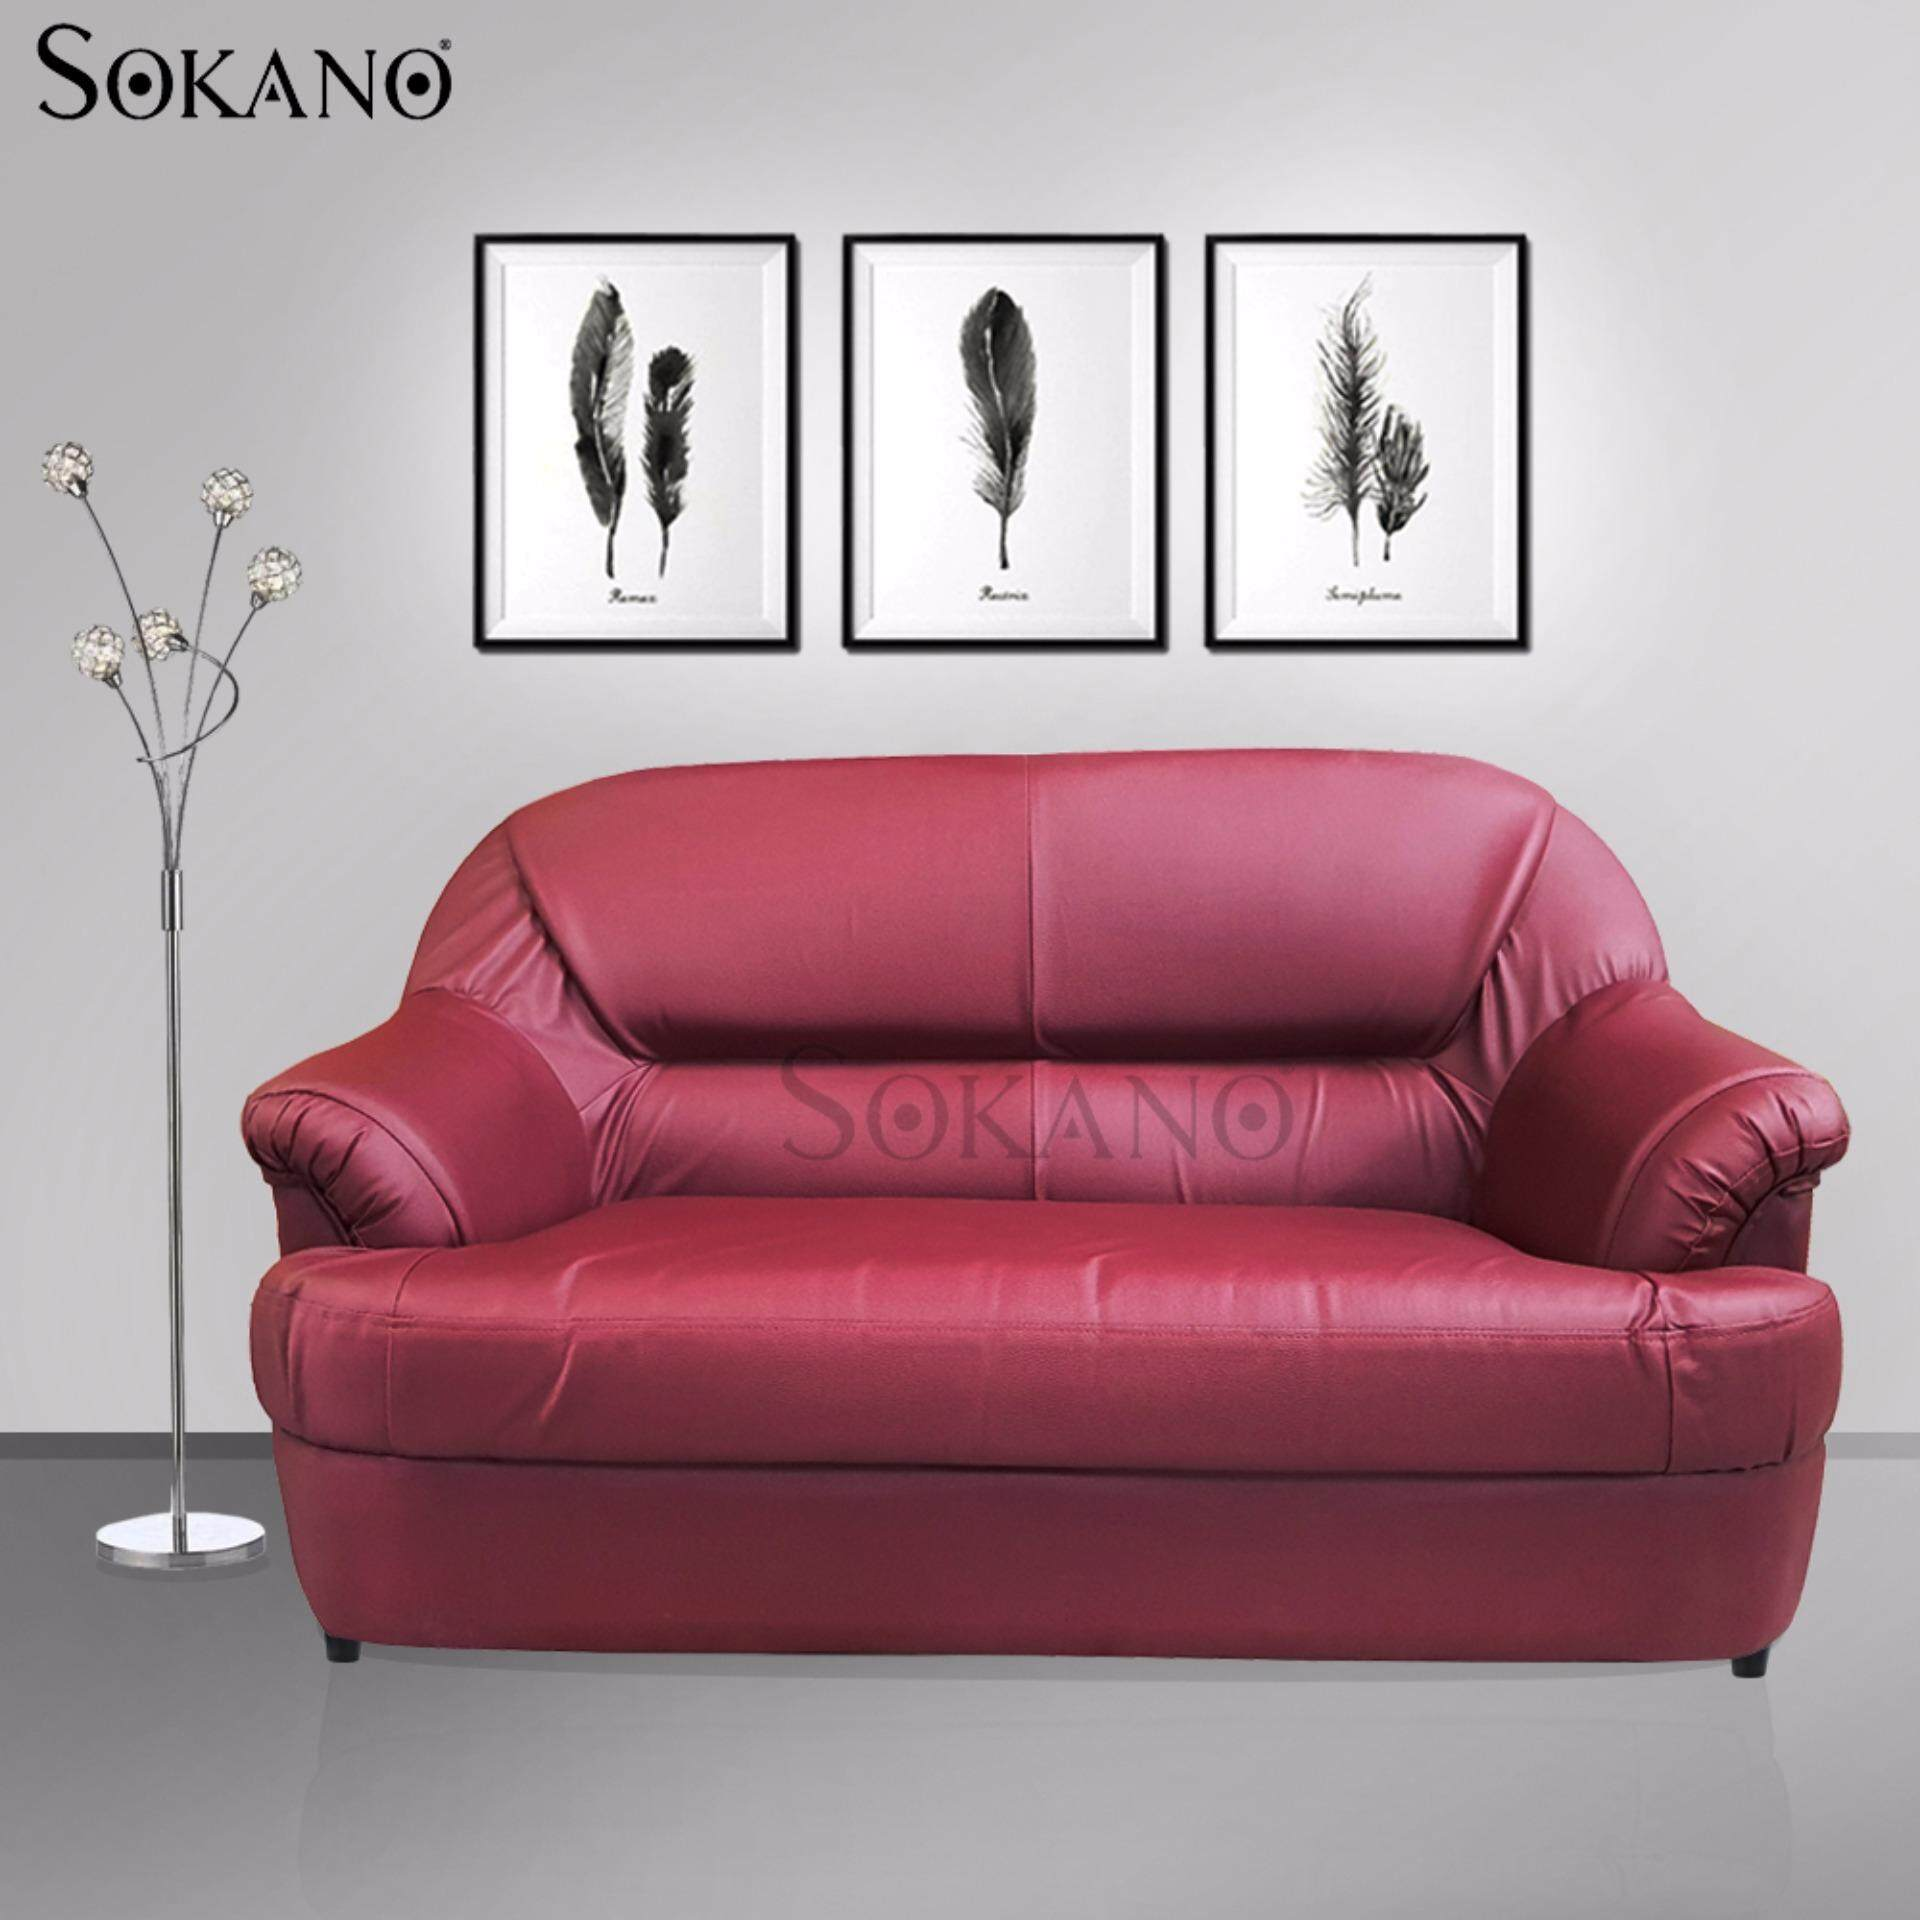 SOKANO MS247 PVC Leather Sofa - 2 seater (Red)